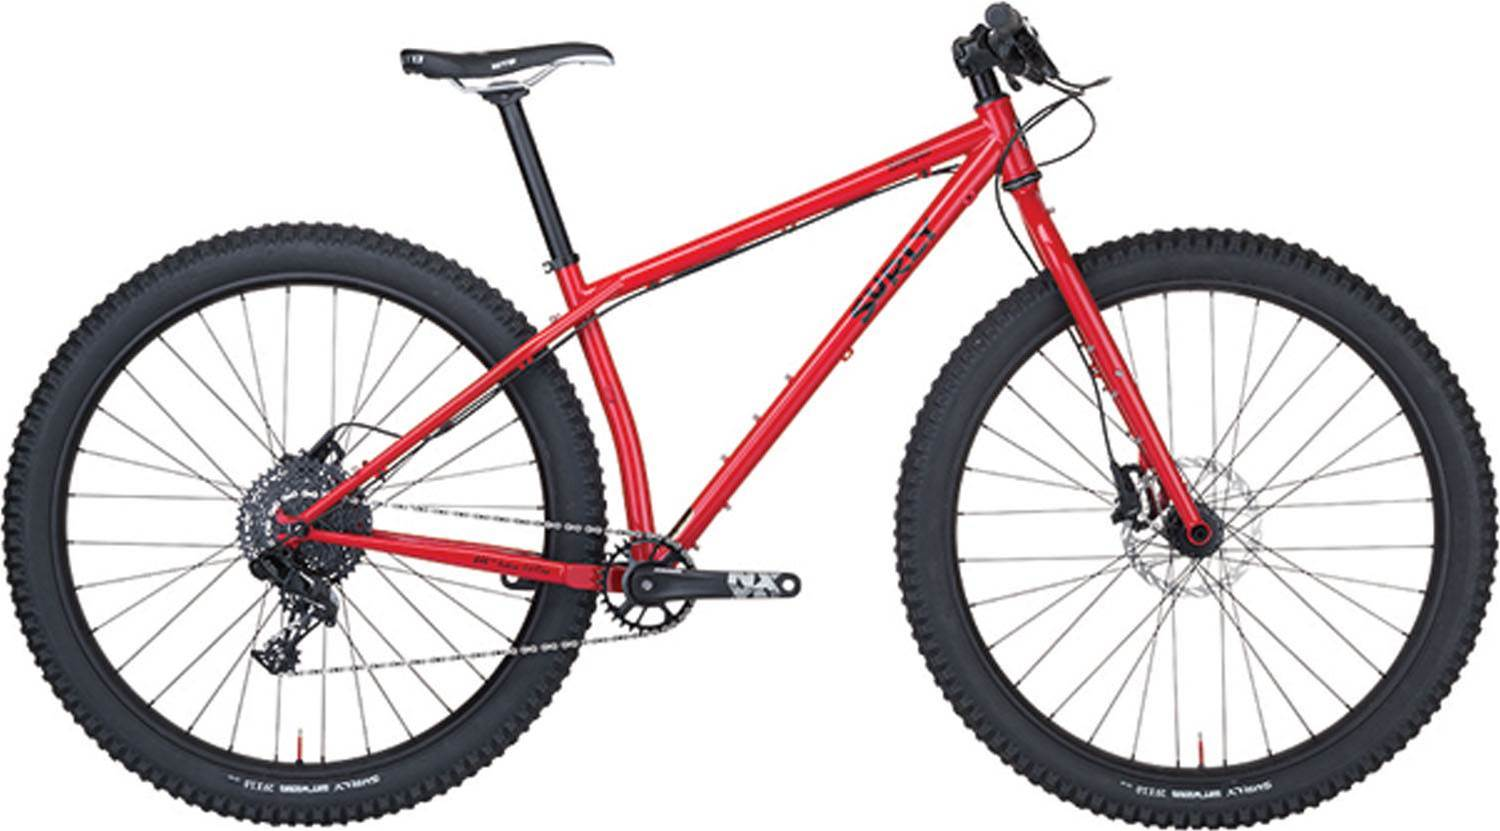 BUYER'S GUIDE: Bikecamping bikes